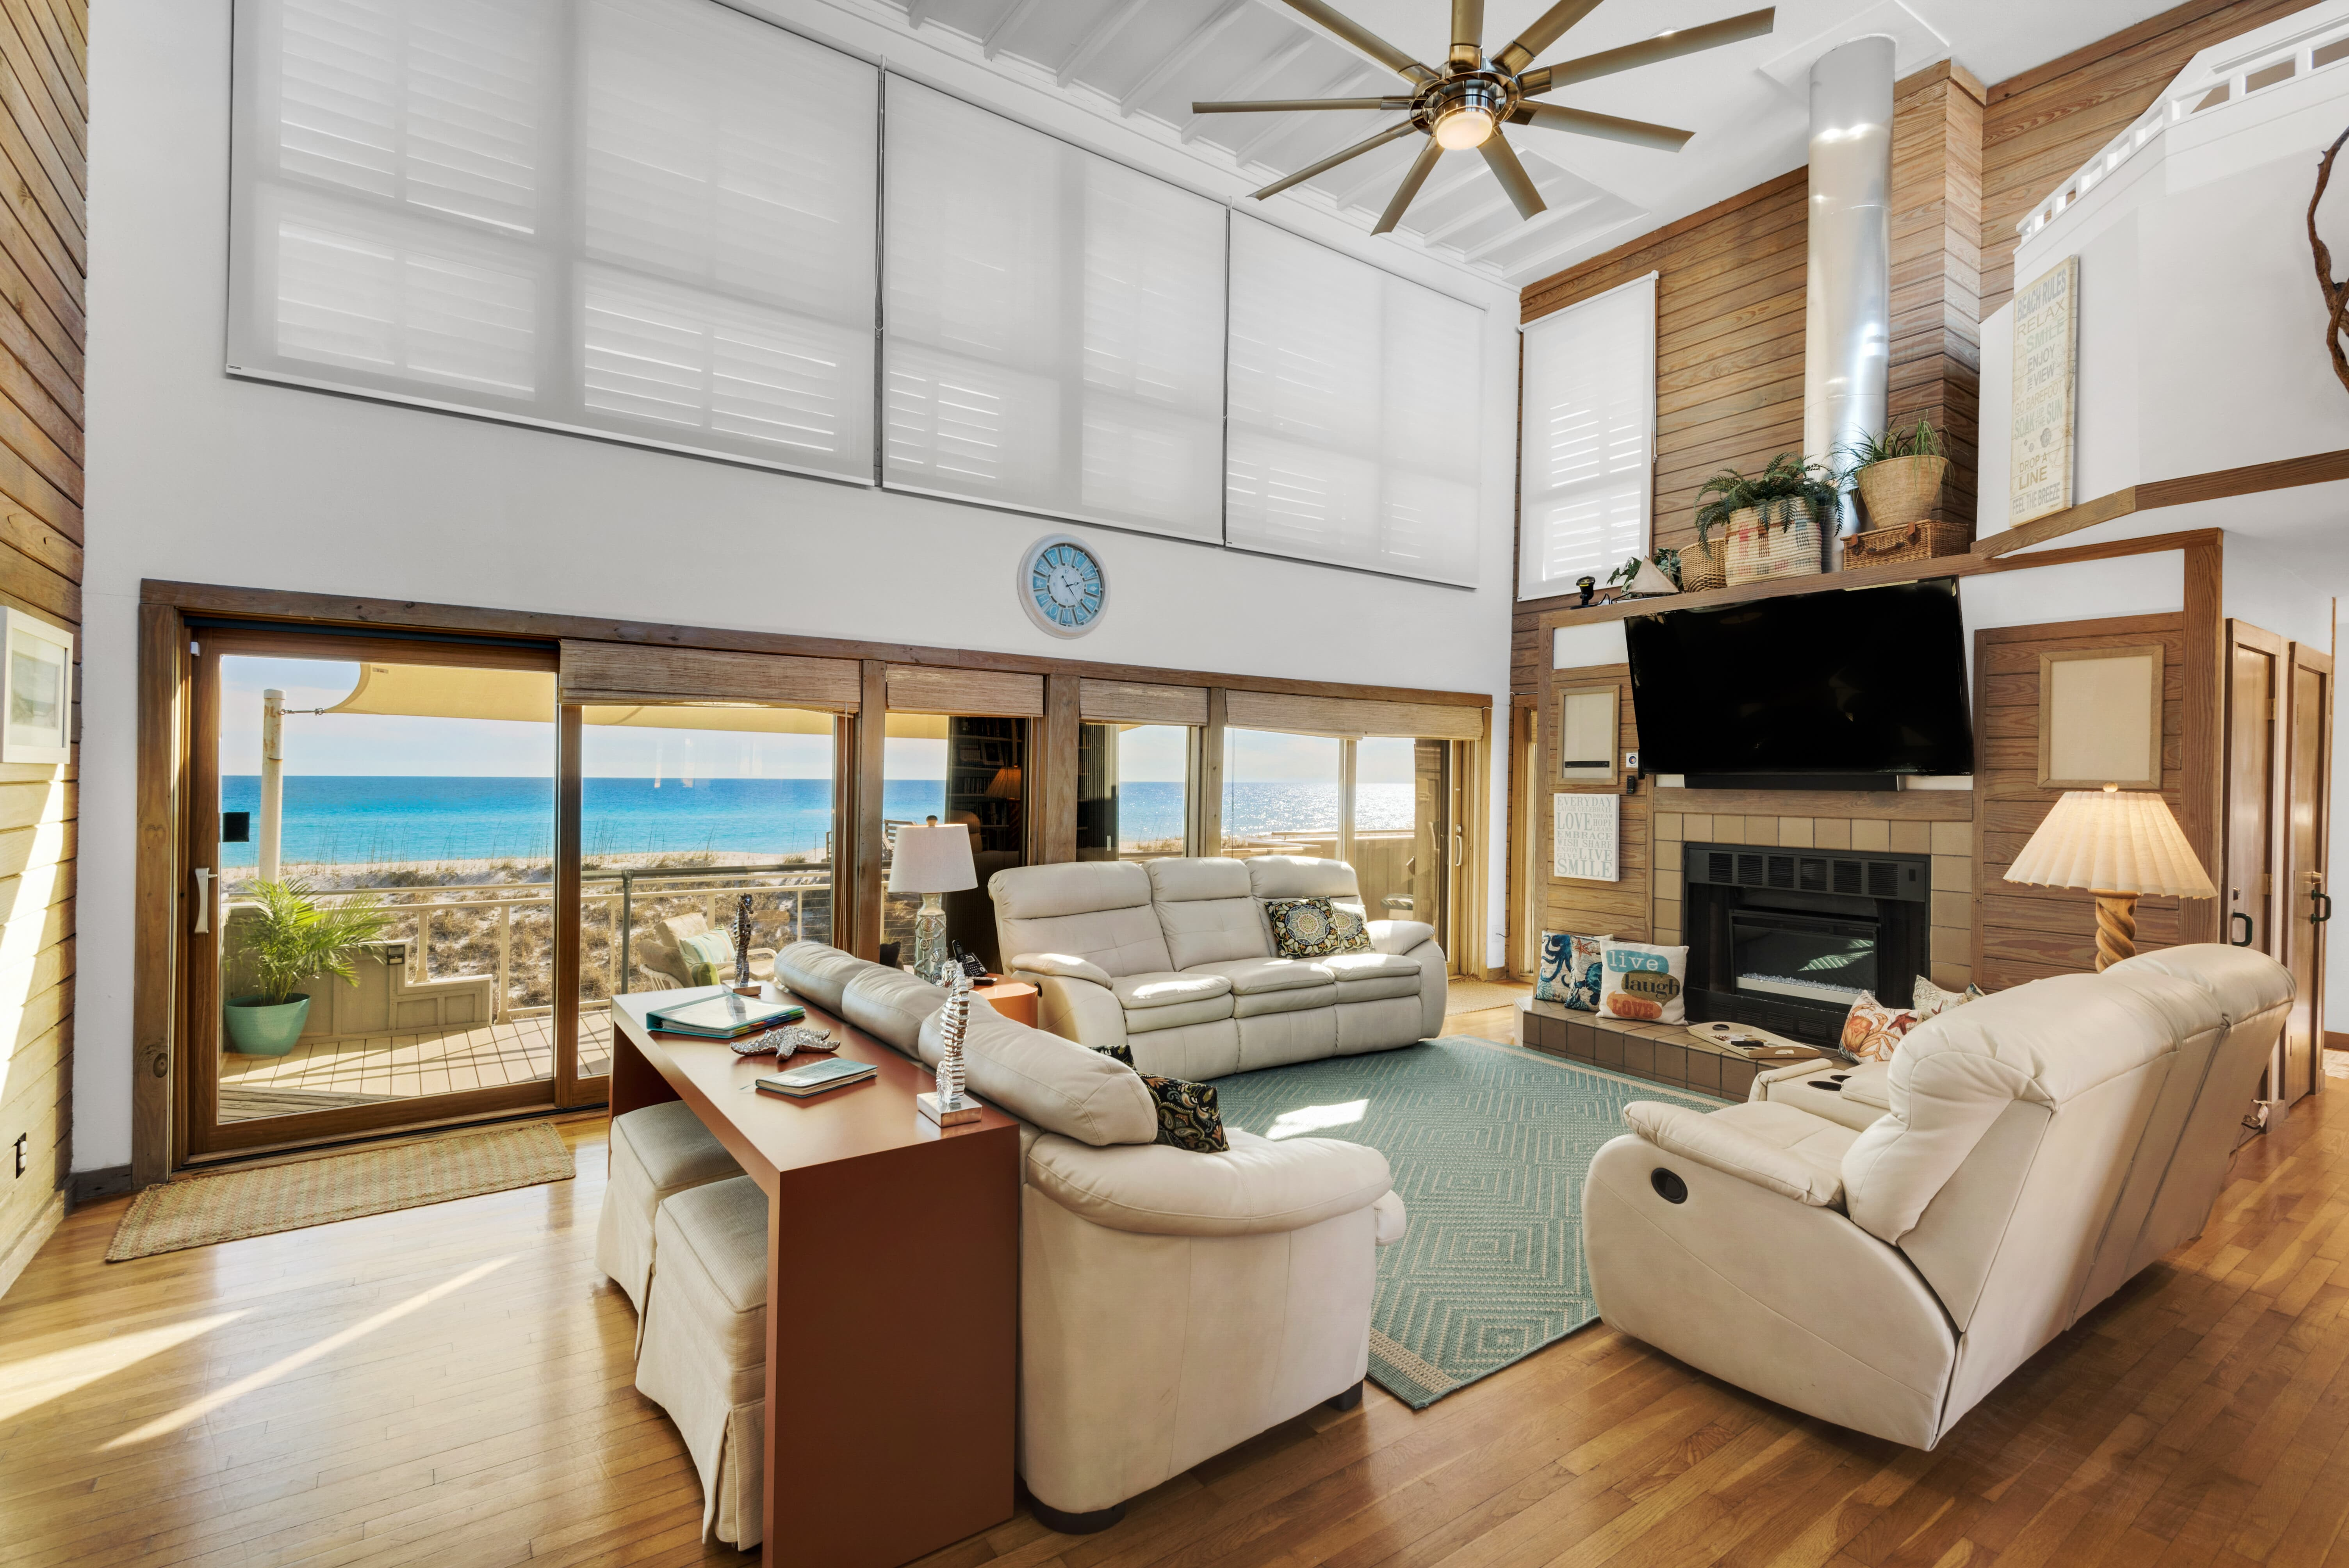 7527 Gulf Blvd - The Oyster House/Cottage rental in Navarre Beach House Rentals in Navarre Florida - #1